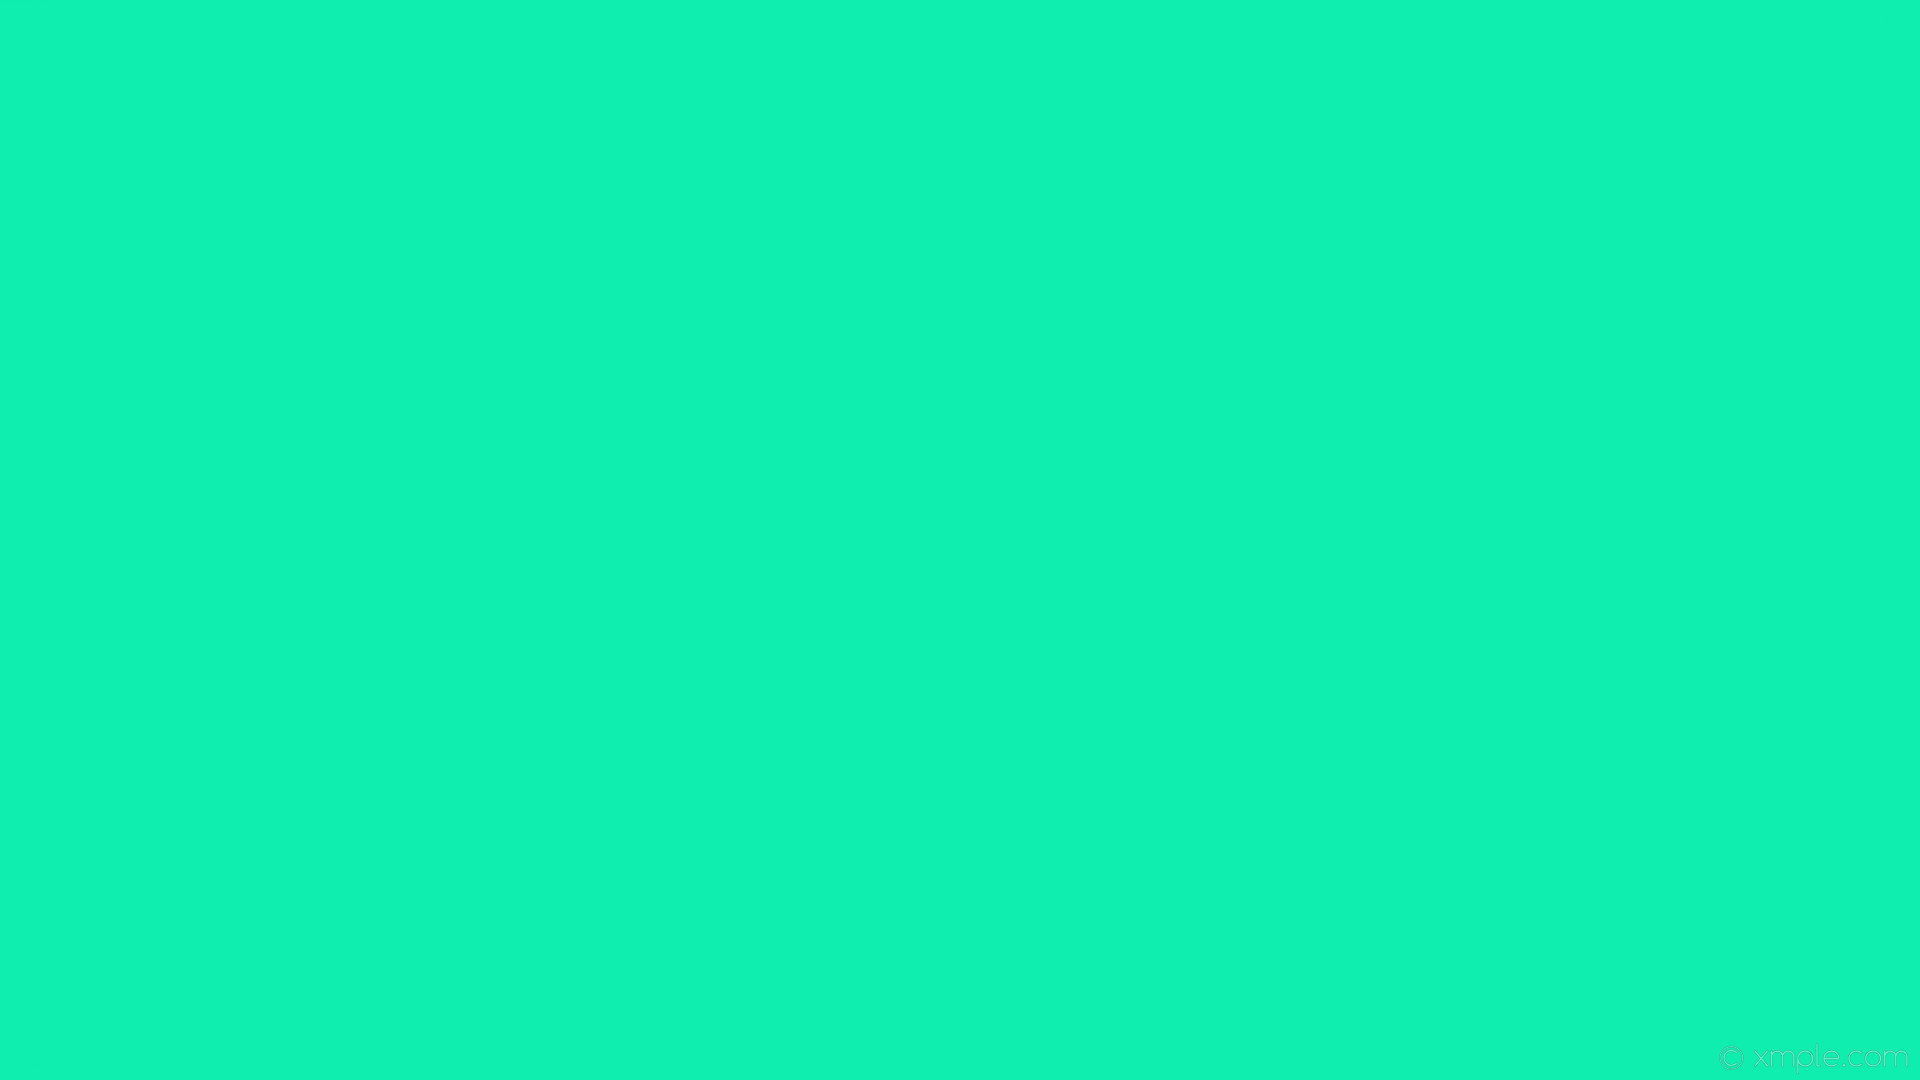 wallpaper plain turquoise one colour single solid color #0feeaf